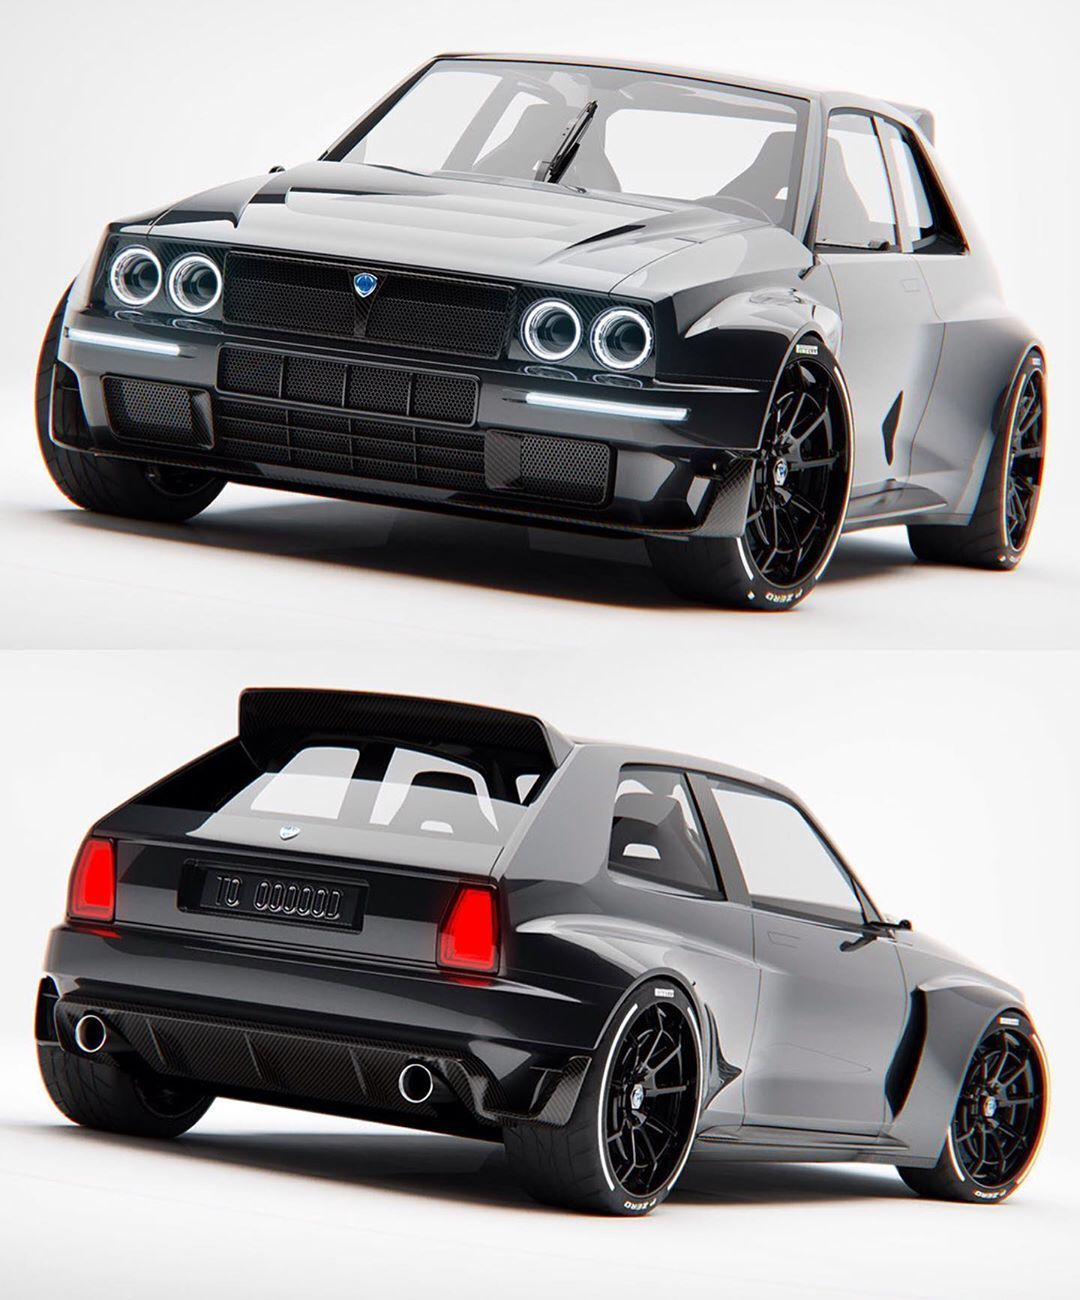 Car Design World On Instagram 2020 Lancia Delta Restomod Designers Matteo Gentile Marc Carreras Shane Sumampow Cardes Lancia Delta Cool Cars Concept Cars